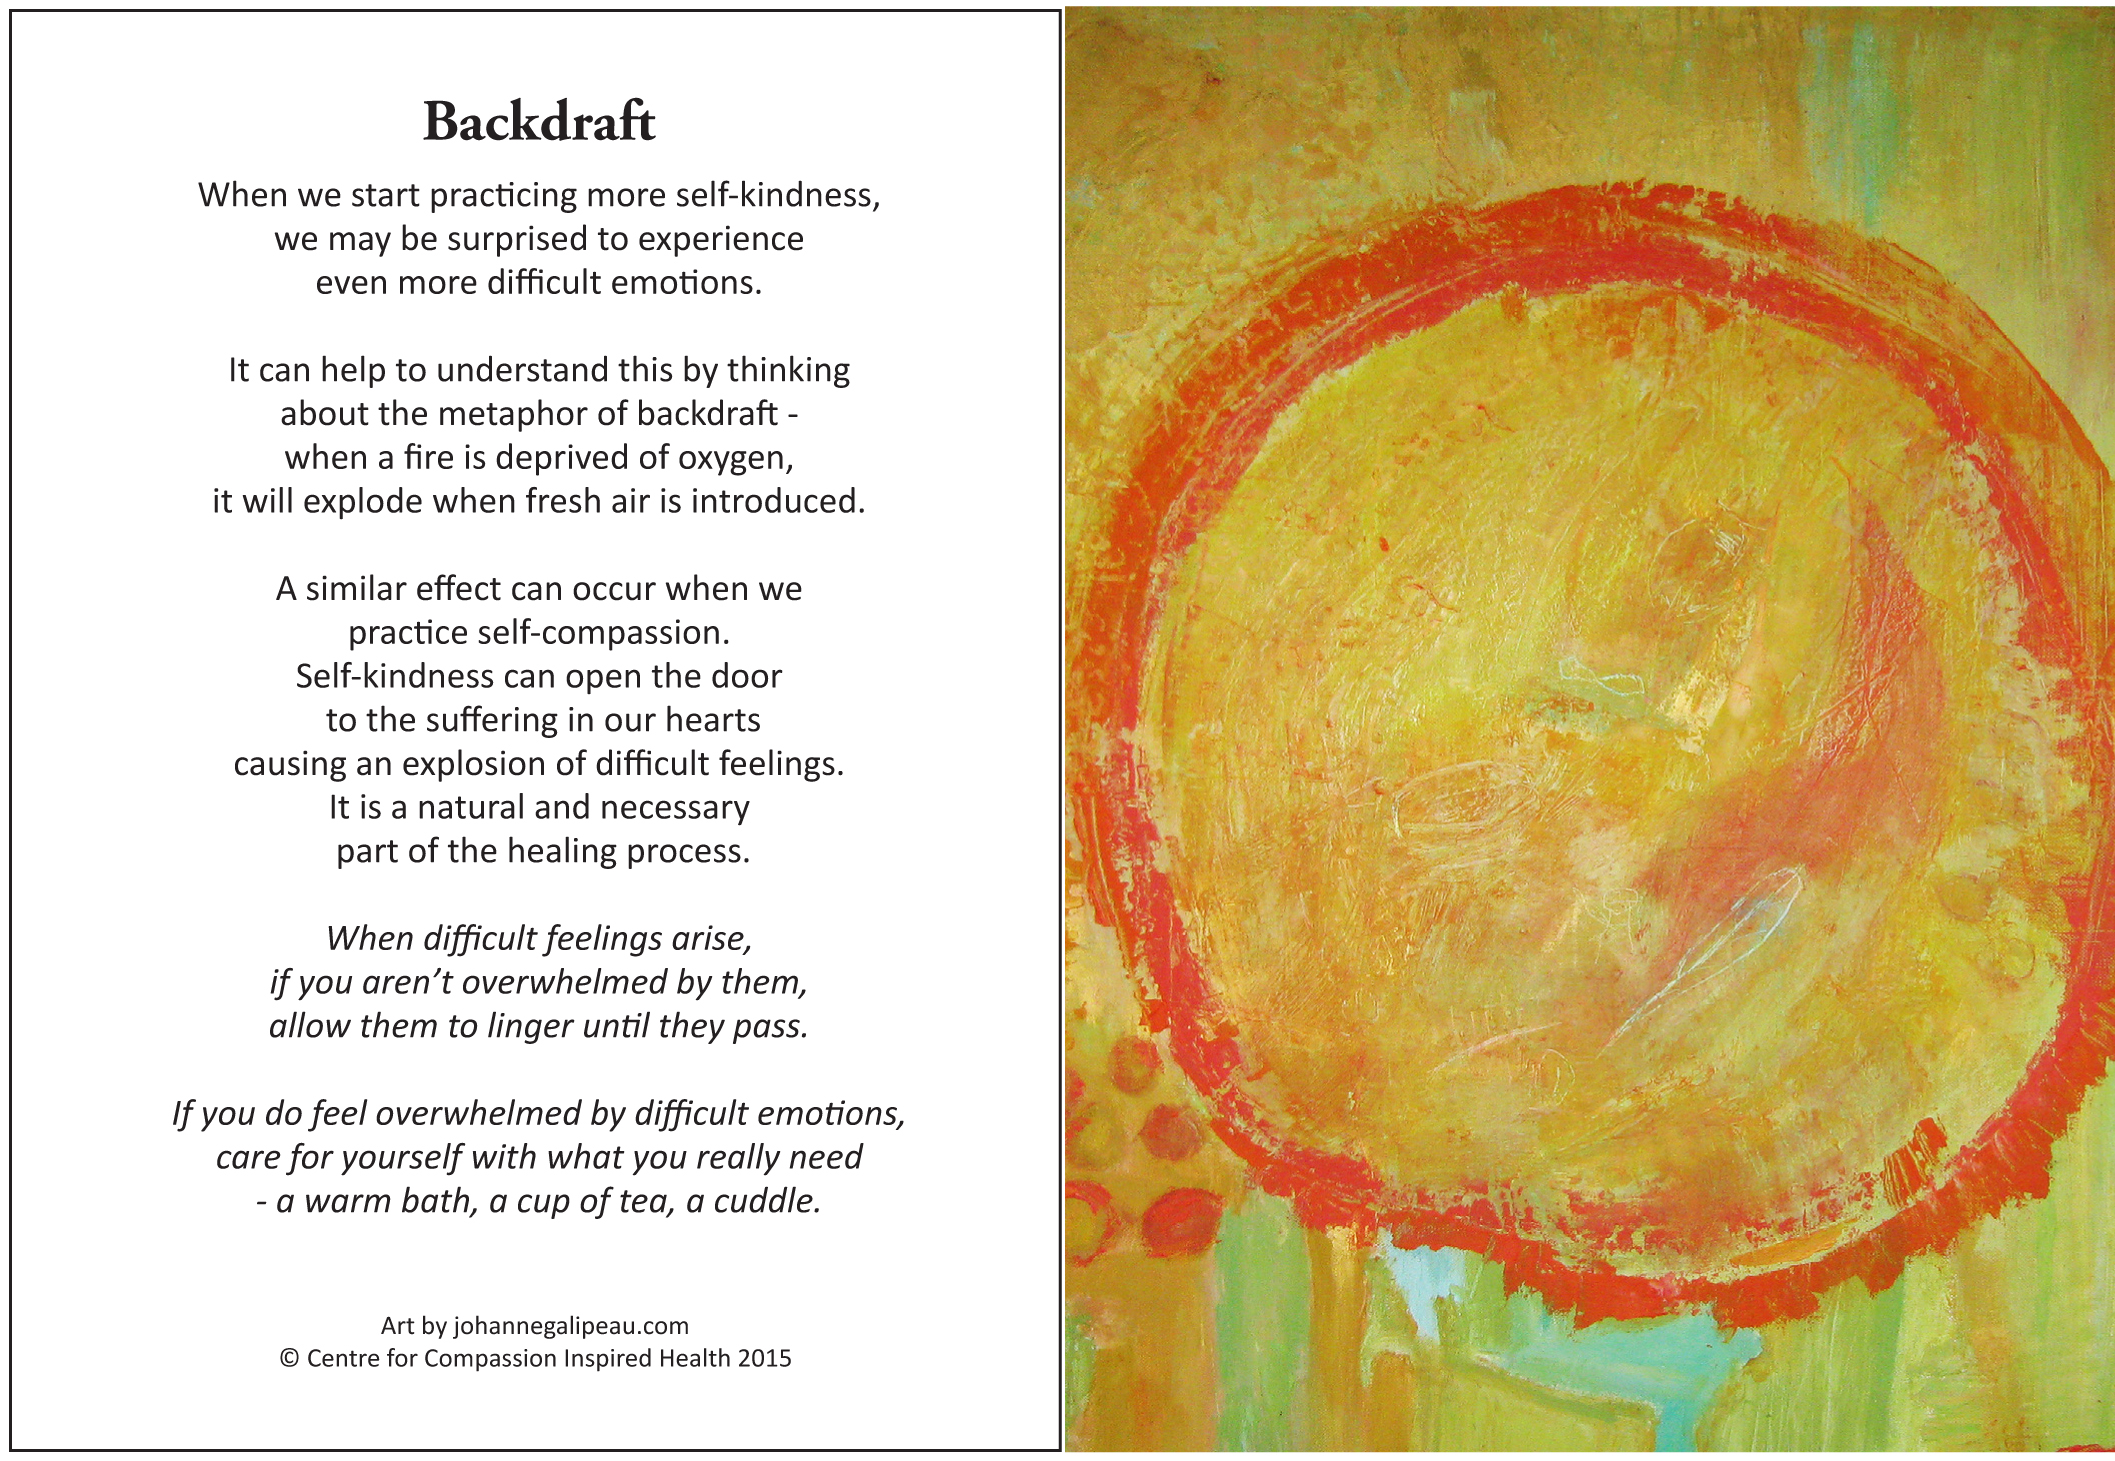 No 18 backdraft